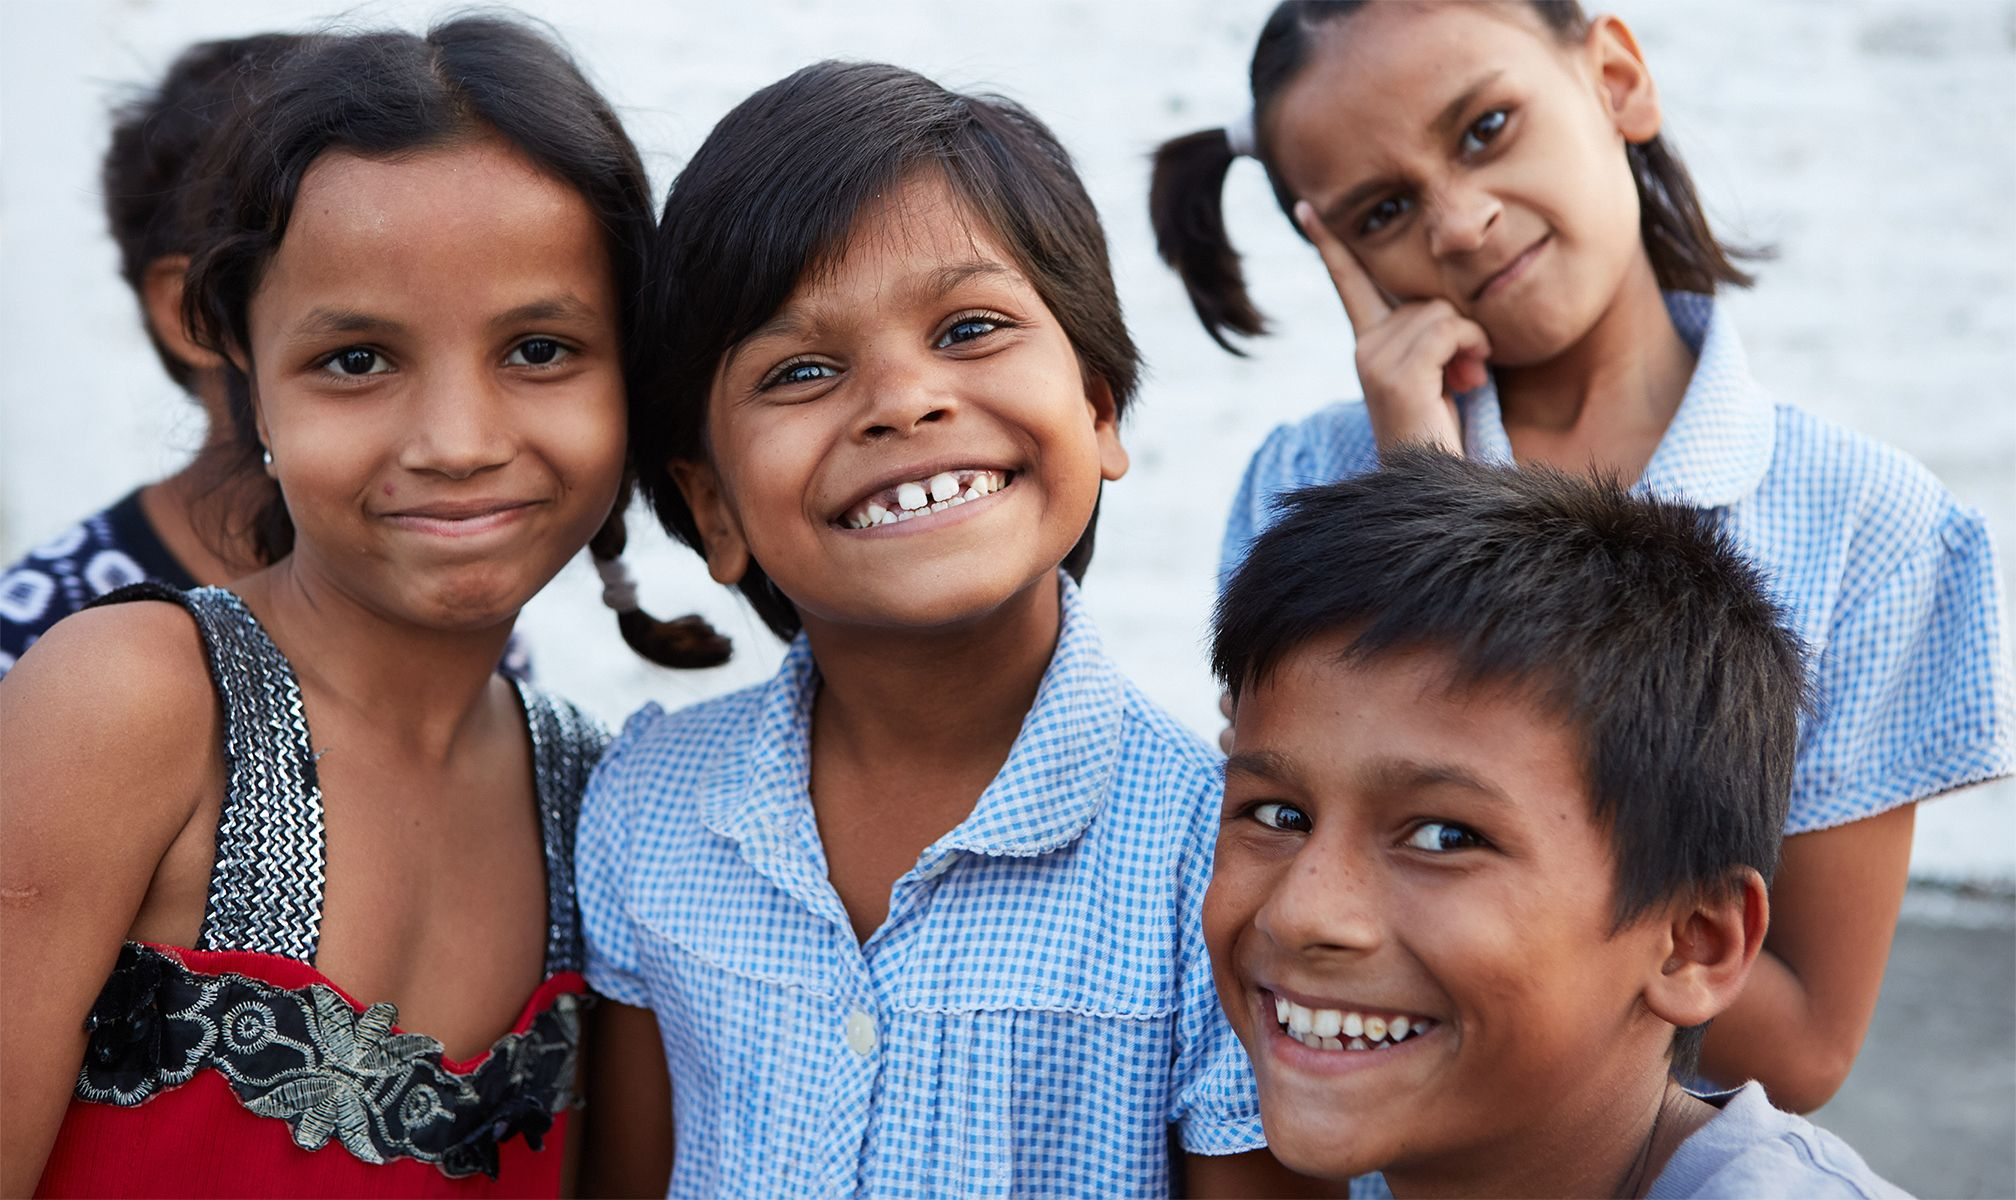 Smiling kids at a Beyond the Orphanage home